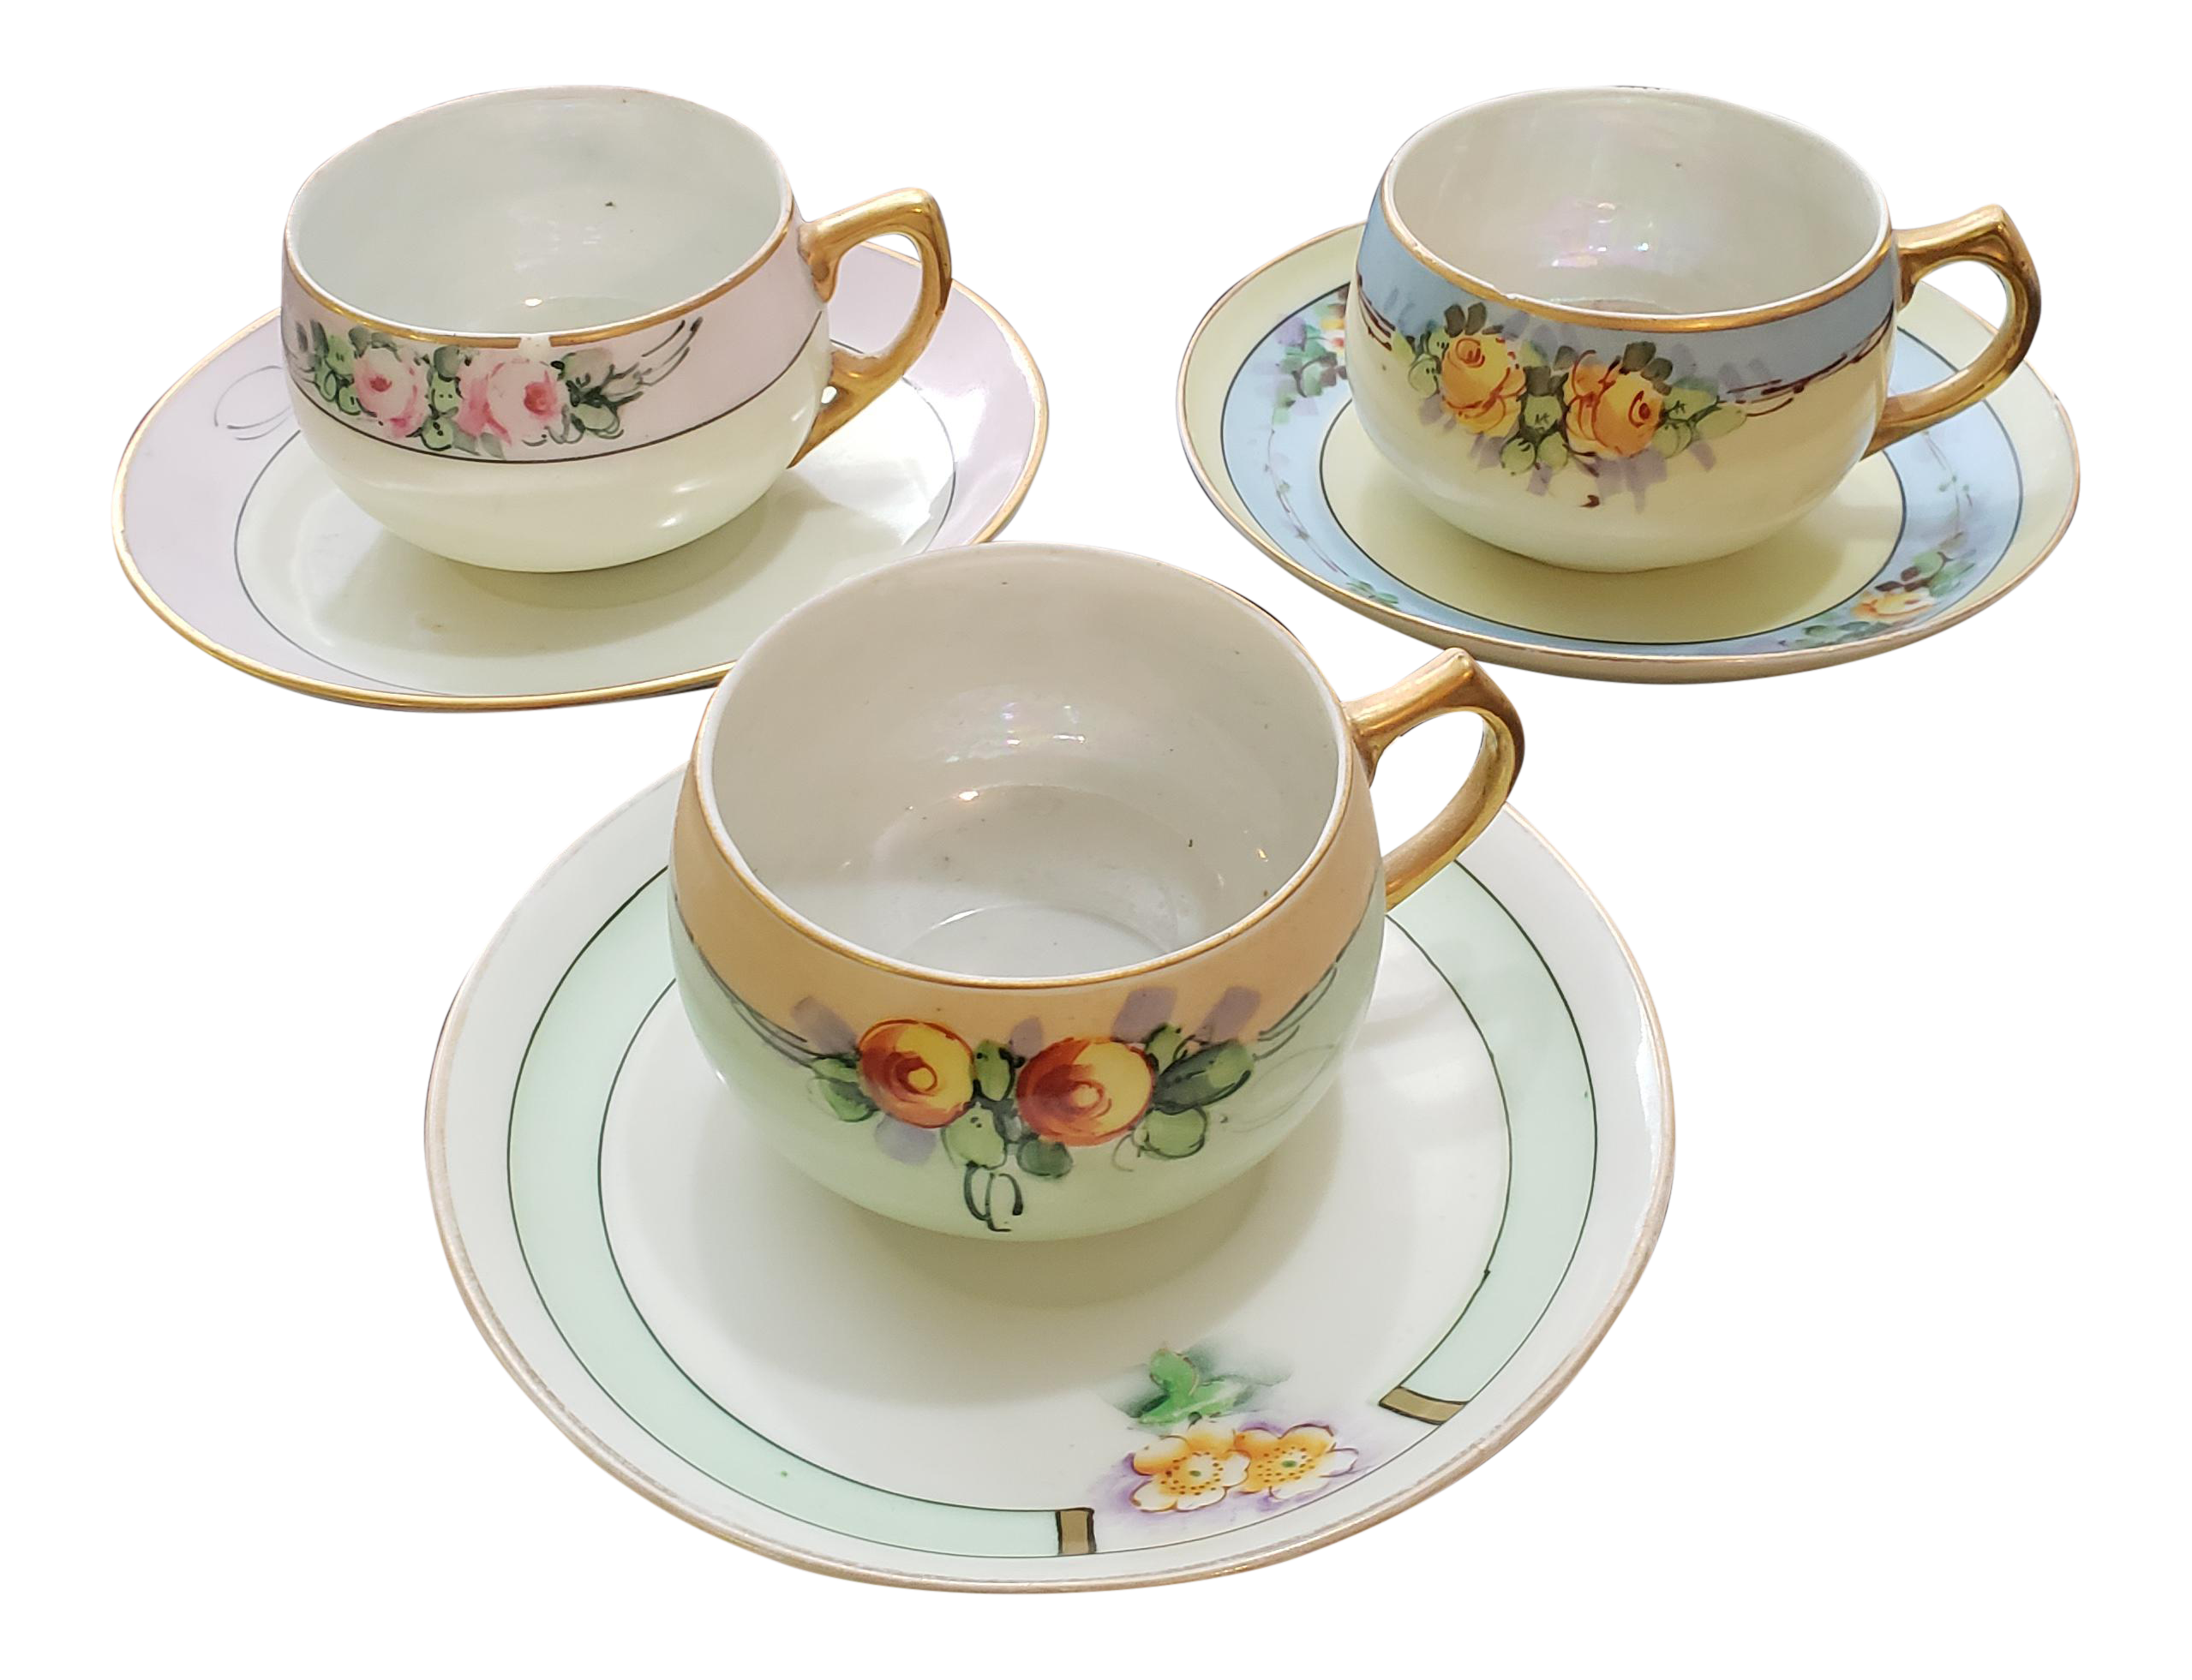 Porcelain Tea Cups And Matching Saucers Set Of 3 Chairish